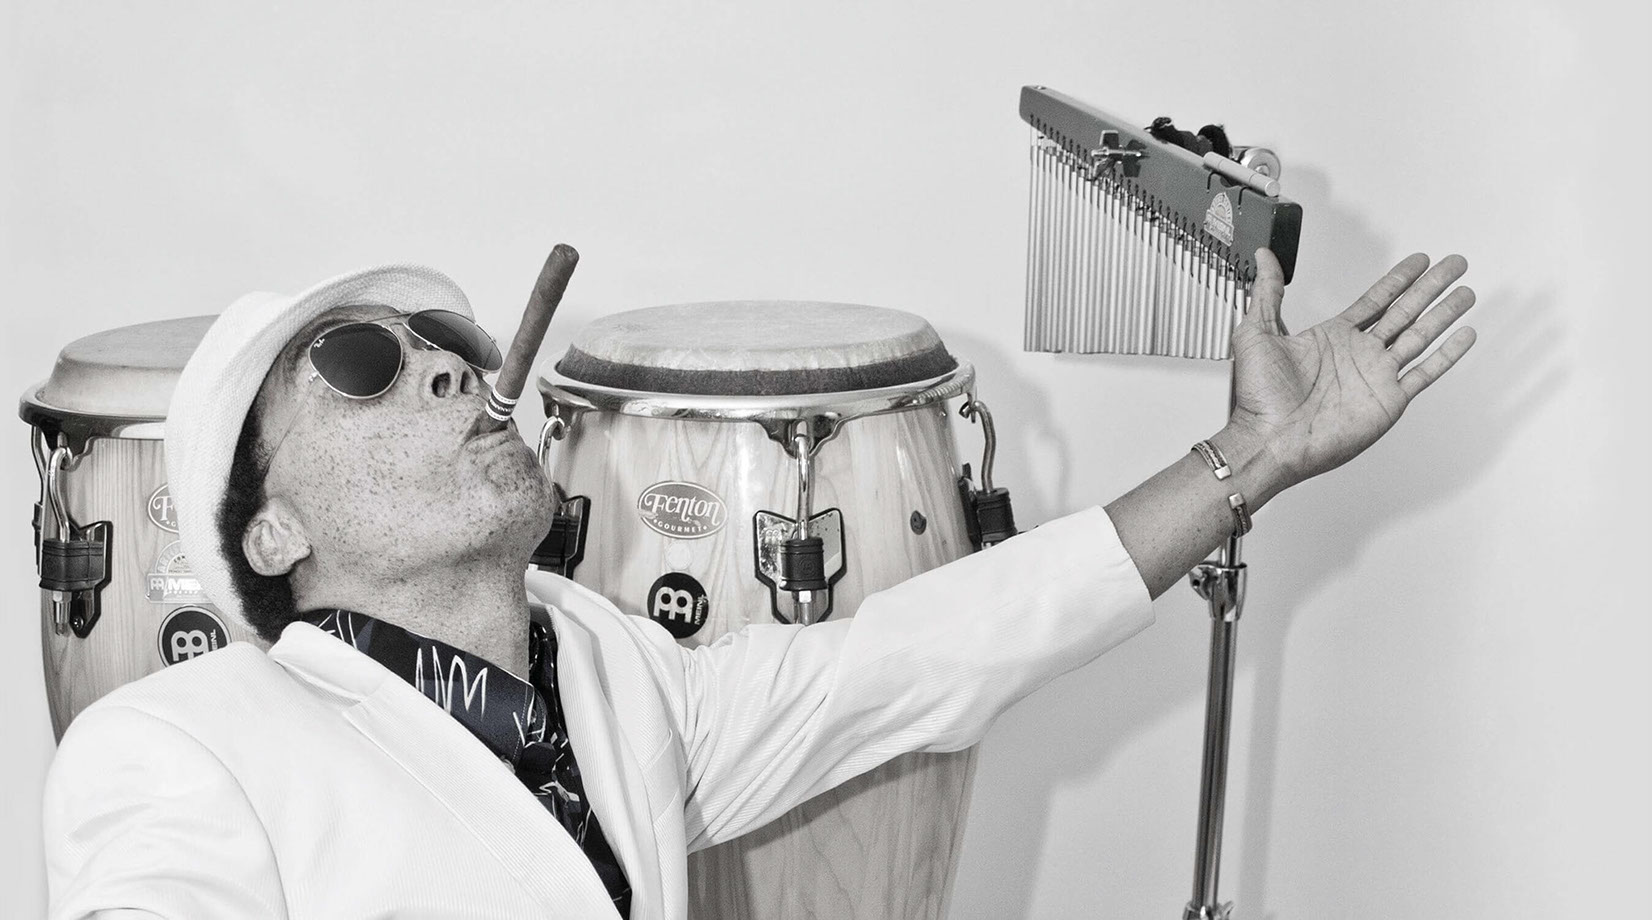 Miguel Fenton, Percussionist and Vocalist.